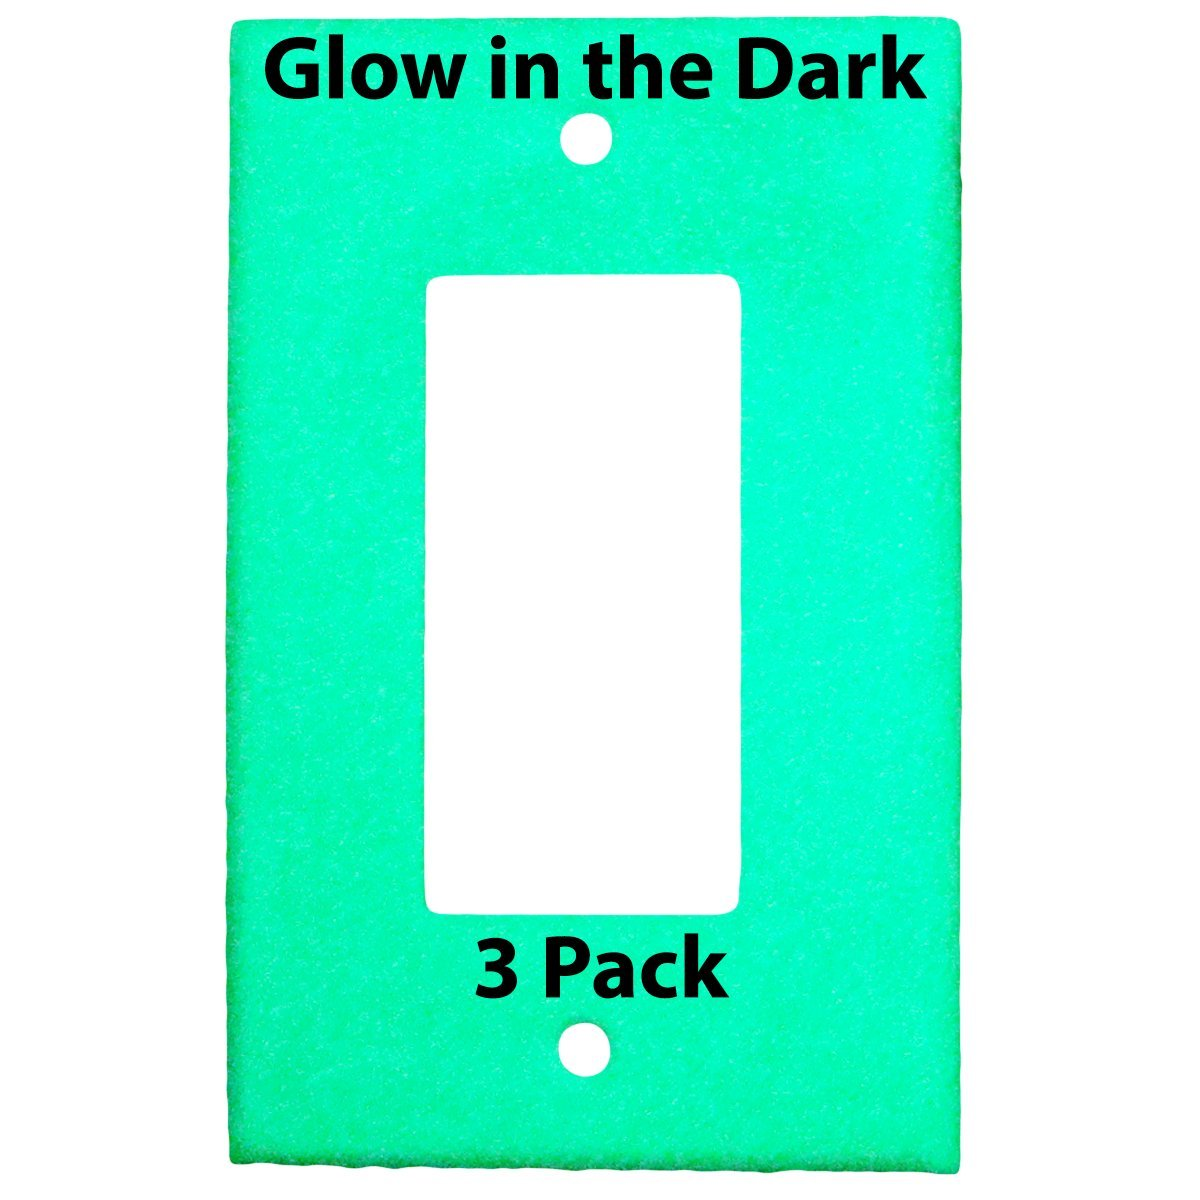 Glow in the Dark Safety 1-Gang Wall Cover Plate - White Plastic - Standard Size for Single Rocker Switch/Decora/GFCI Device (3 Pack)